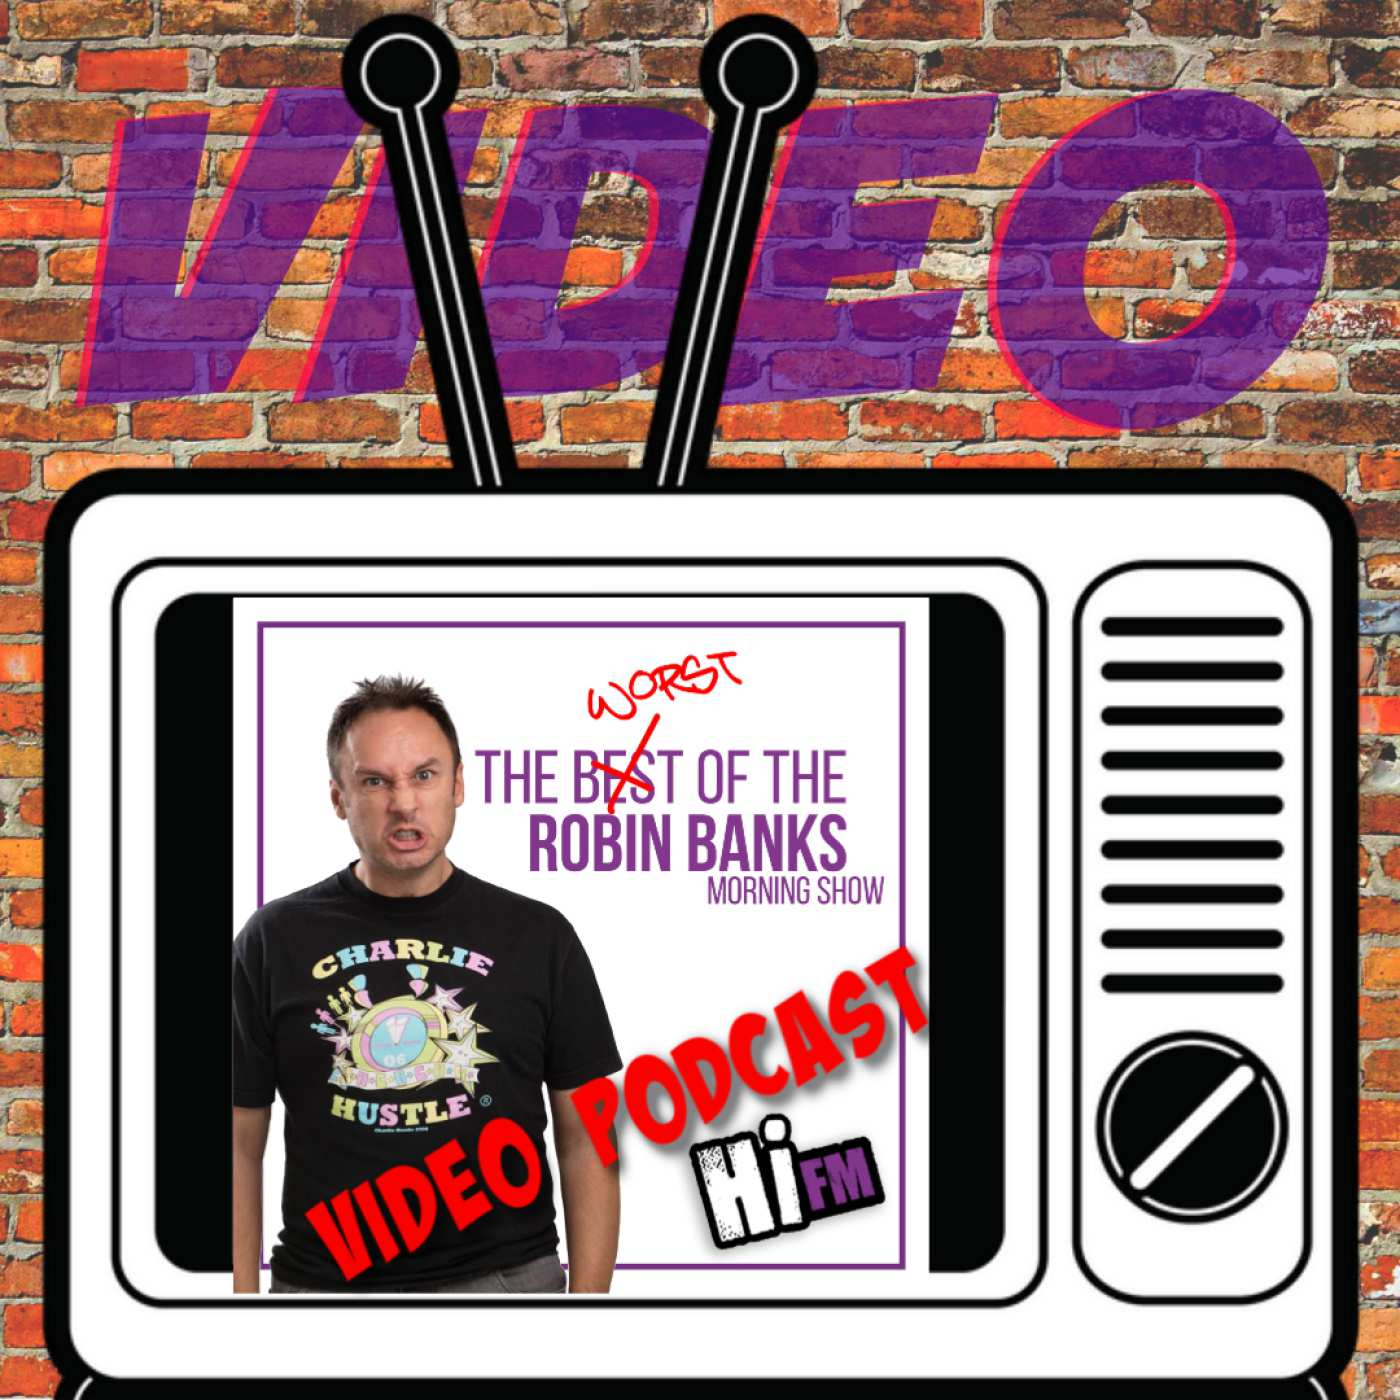 Robin Banks & The WORST of Video Edition